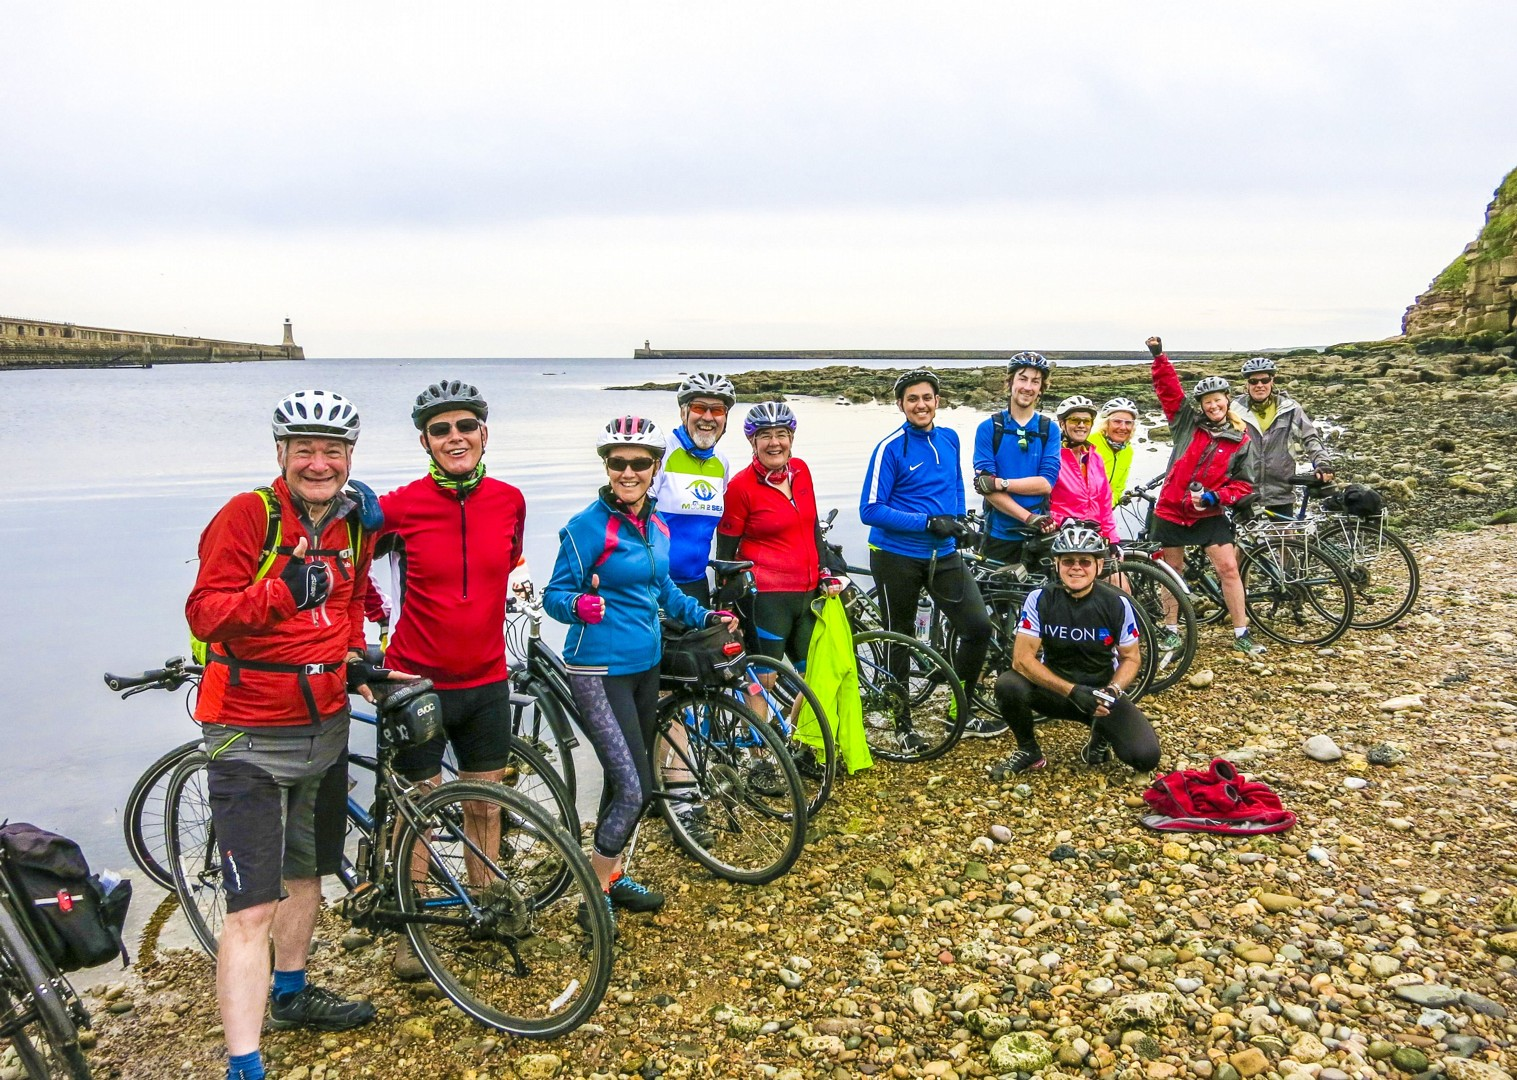 self-guided-big-or-small-group-whitehaven-to-newcastle-cycling.jpg - UK - C2C - Coast to Coast 5 Days Cycling - Self-Guided Leisure Cycling Holiday - Leisure Cycling